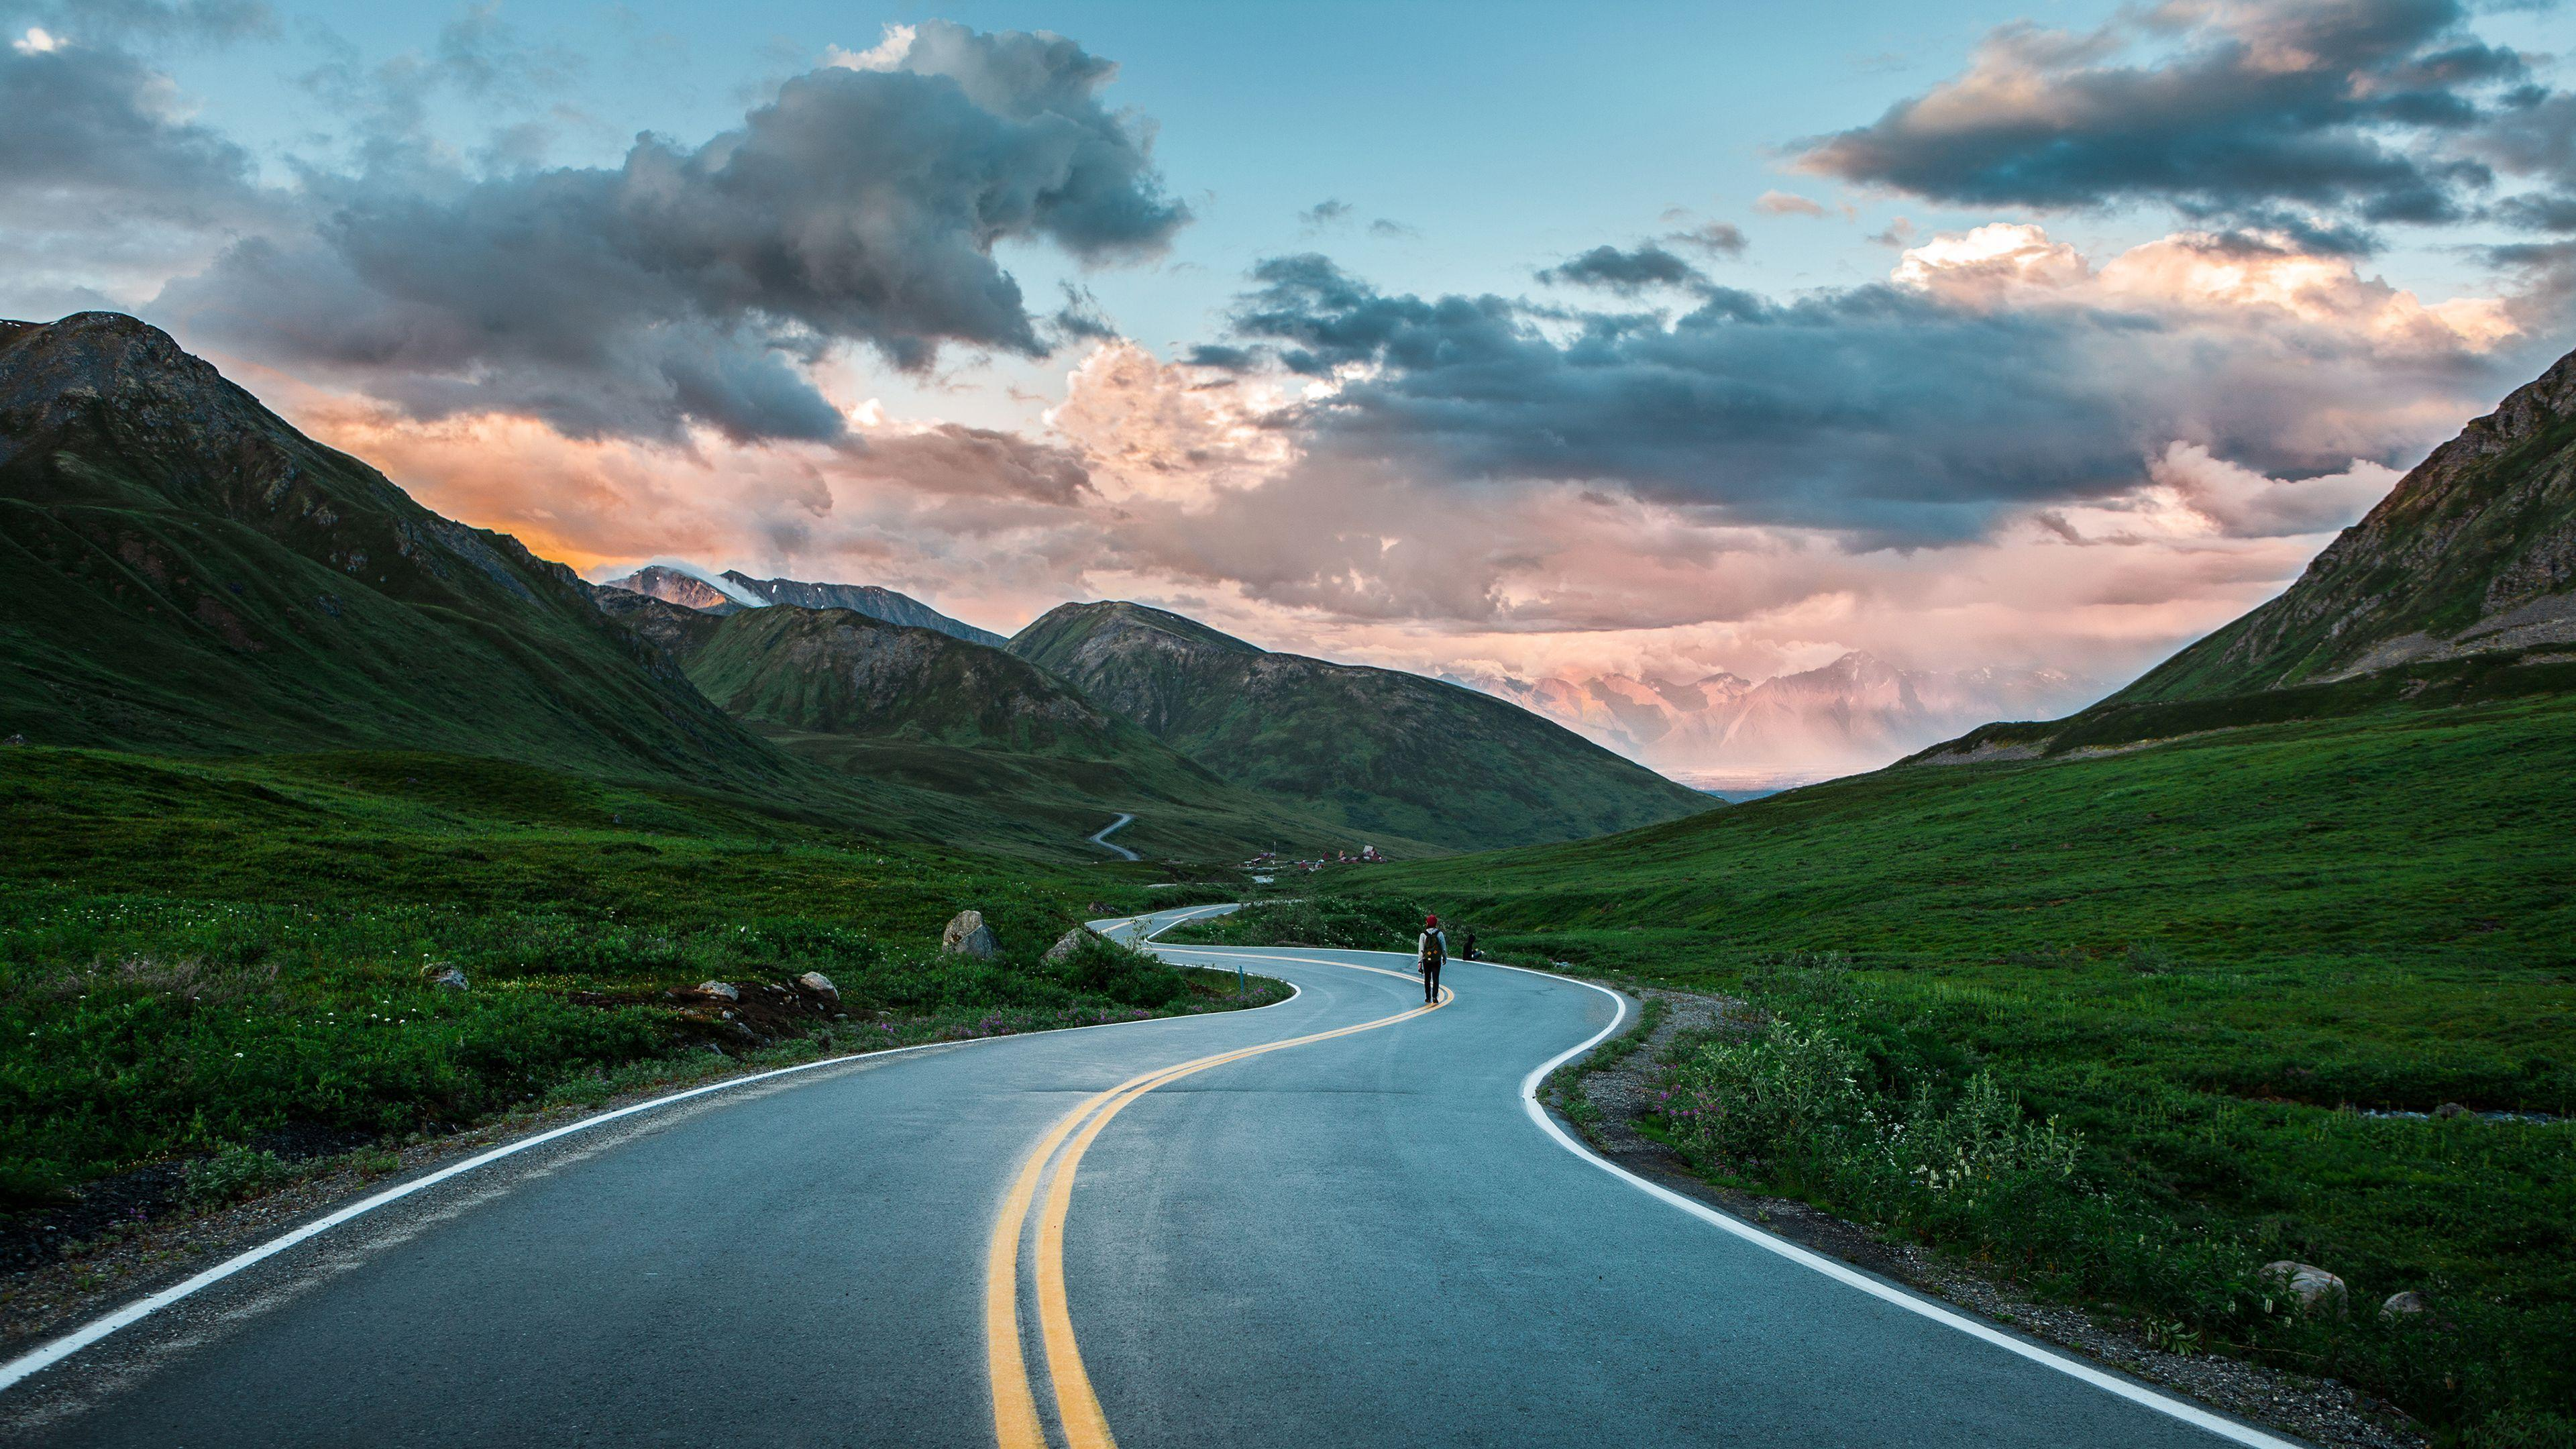 Cute Animated Moving Wallpapers For Desktop Hd Walking On The Curvy Road Wallpaper Download Free